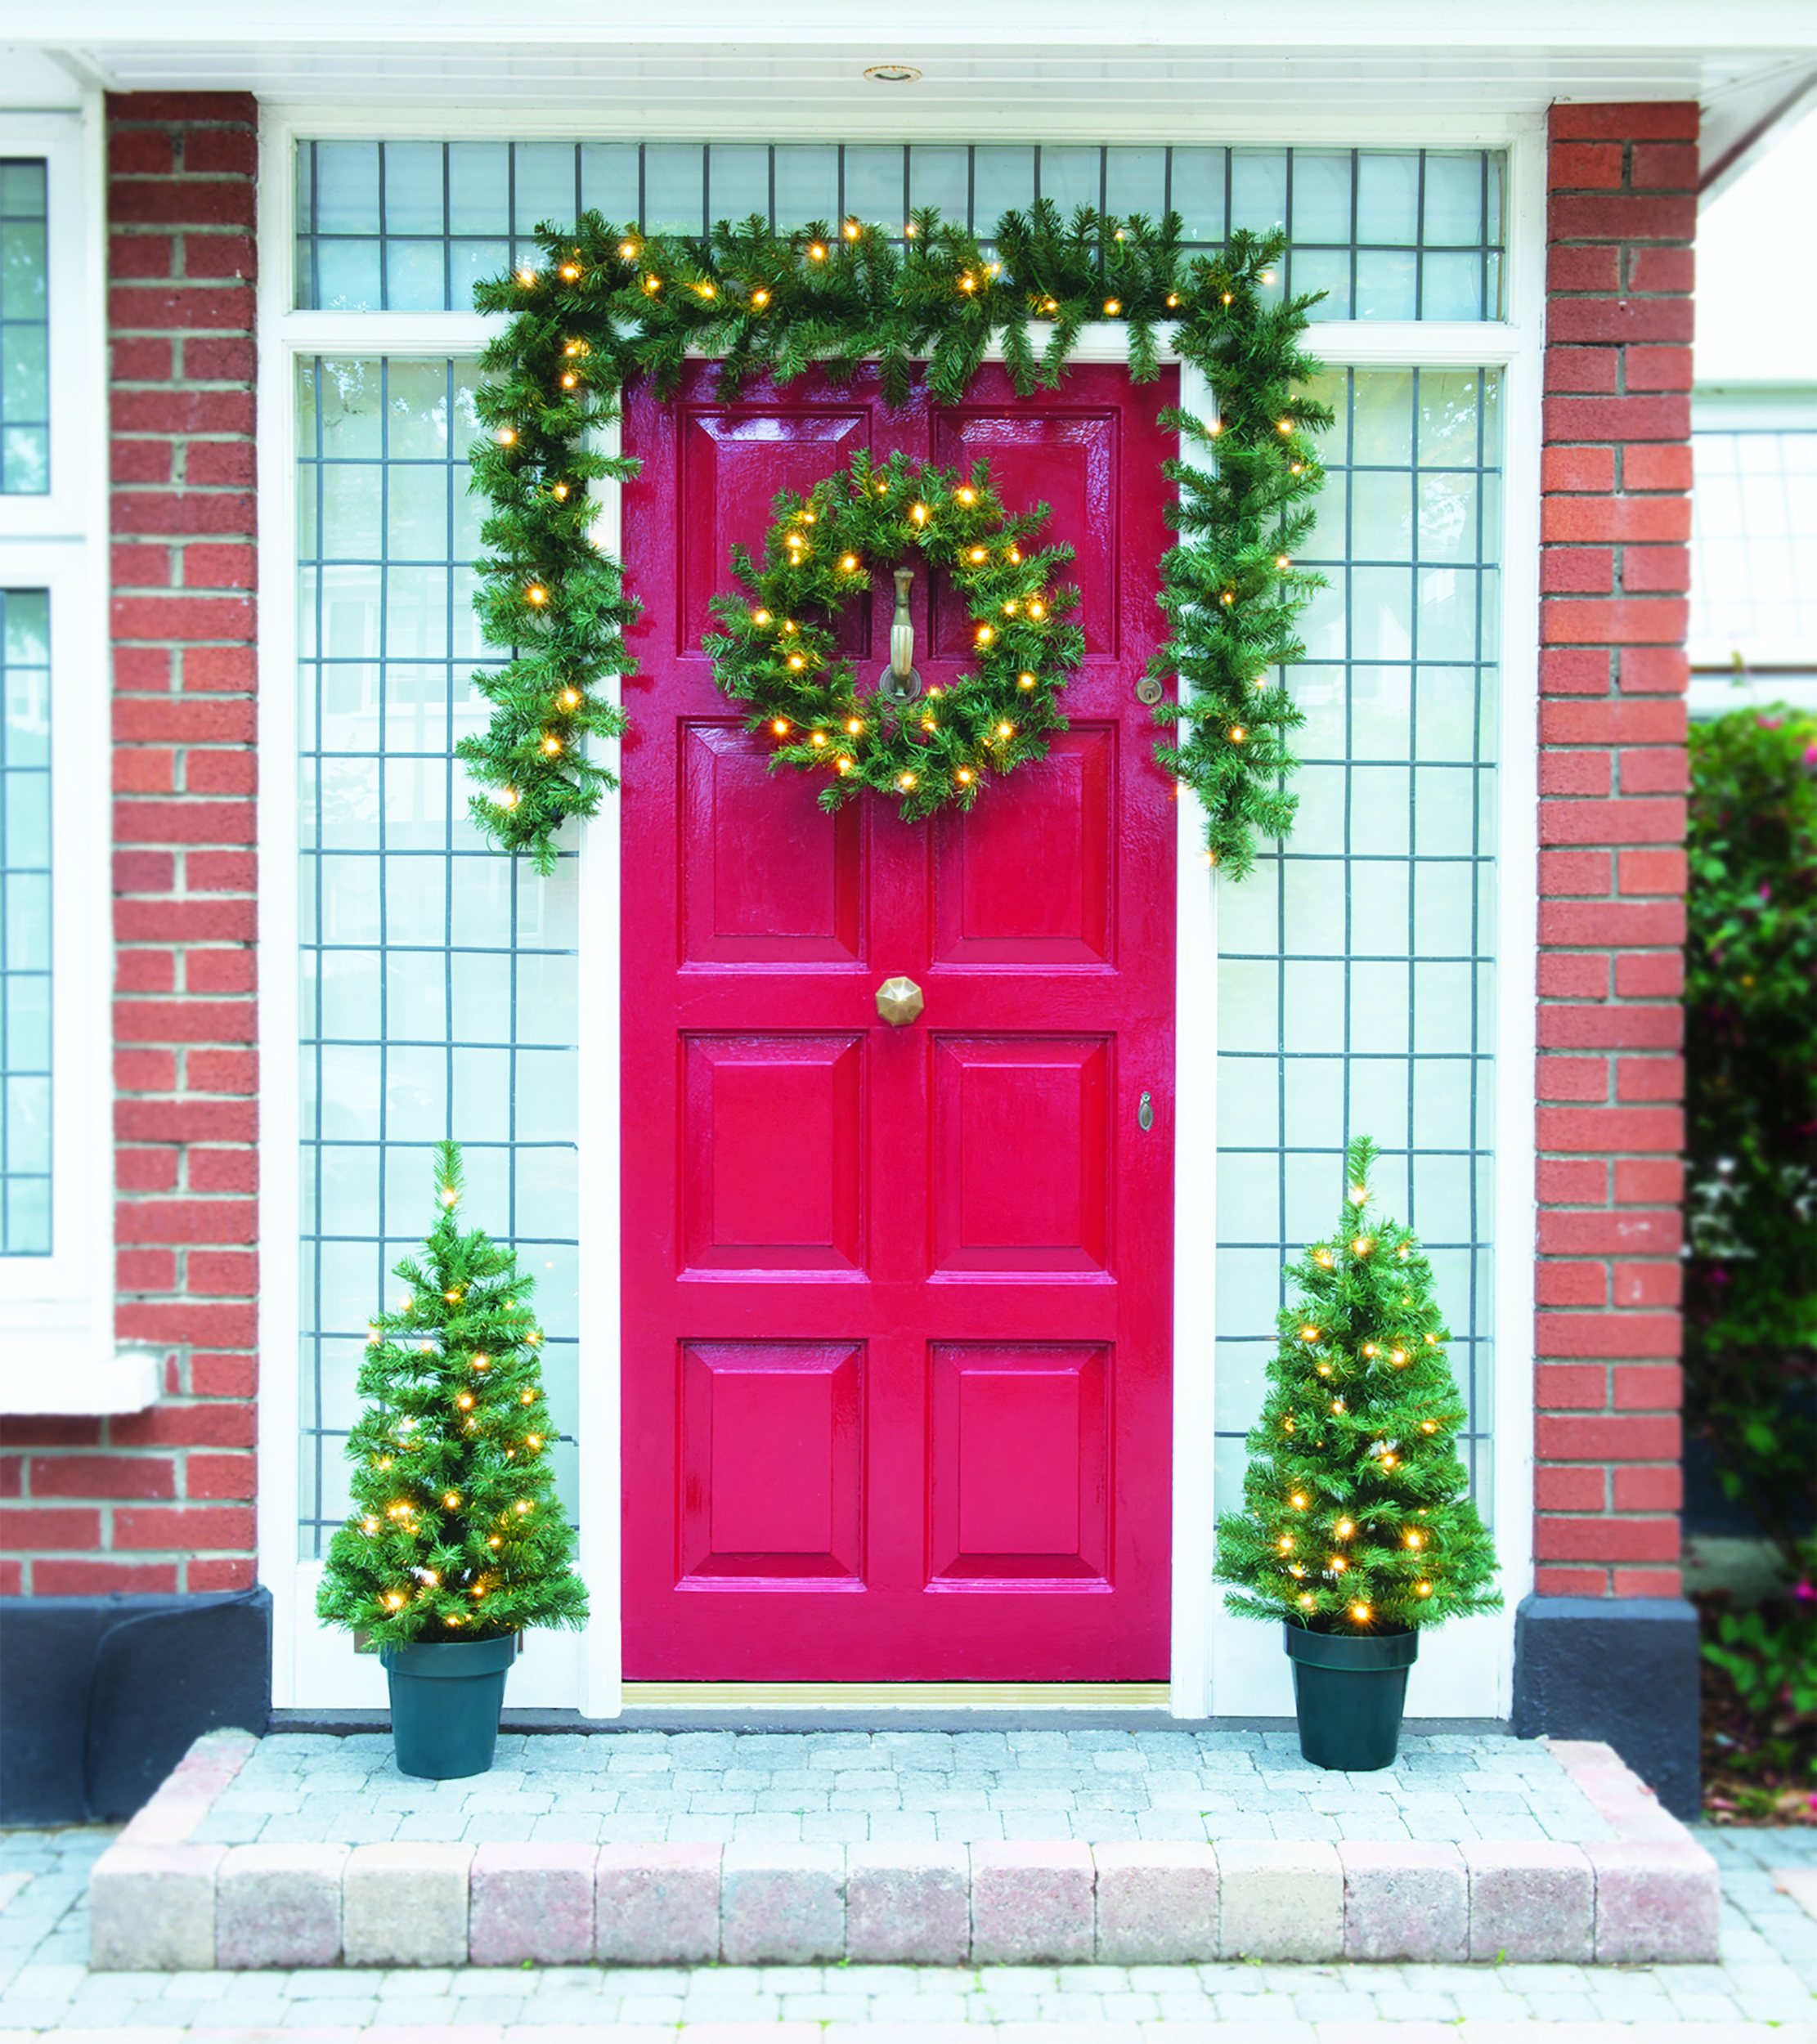 Festive Pre Lit Christmas Door Decoration Set 4 Piece Christmas Decorations Topline Ie